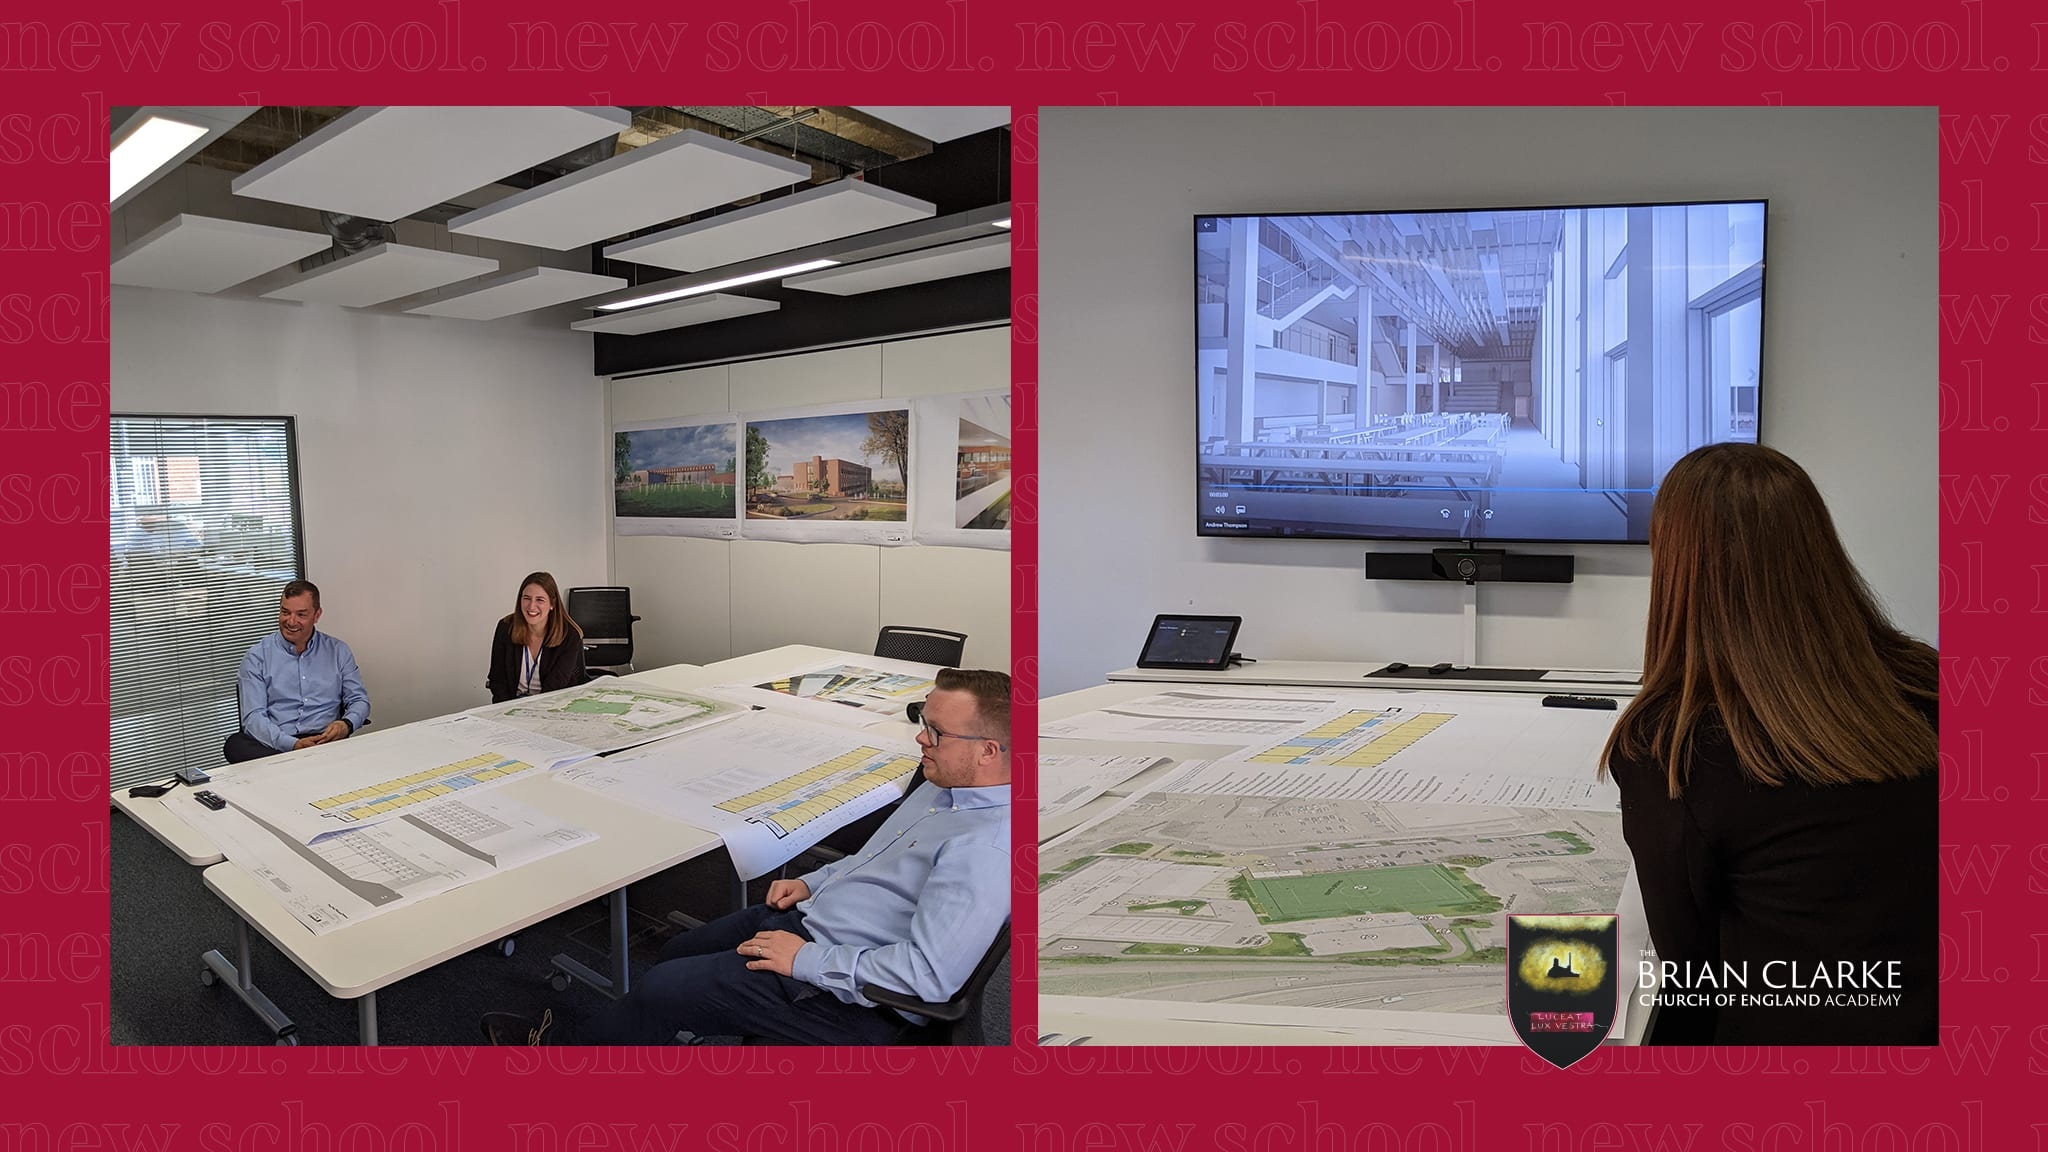 Allison with members of the Willmott Dixon team, reviewing plans and watching the fly-through animation